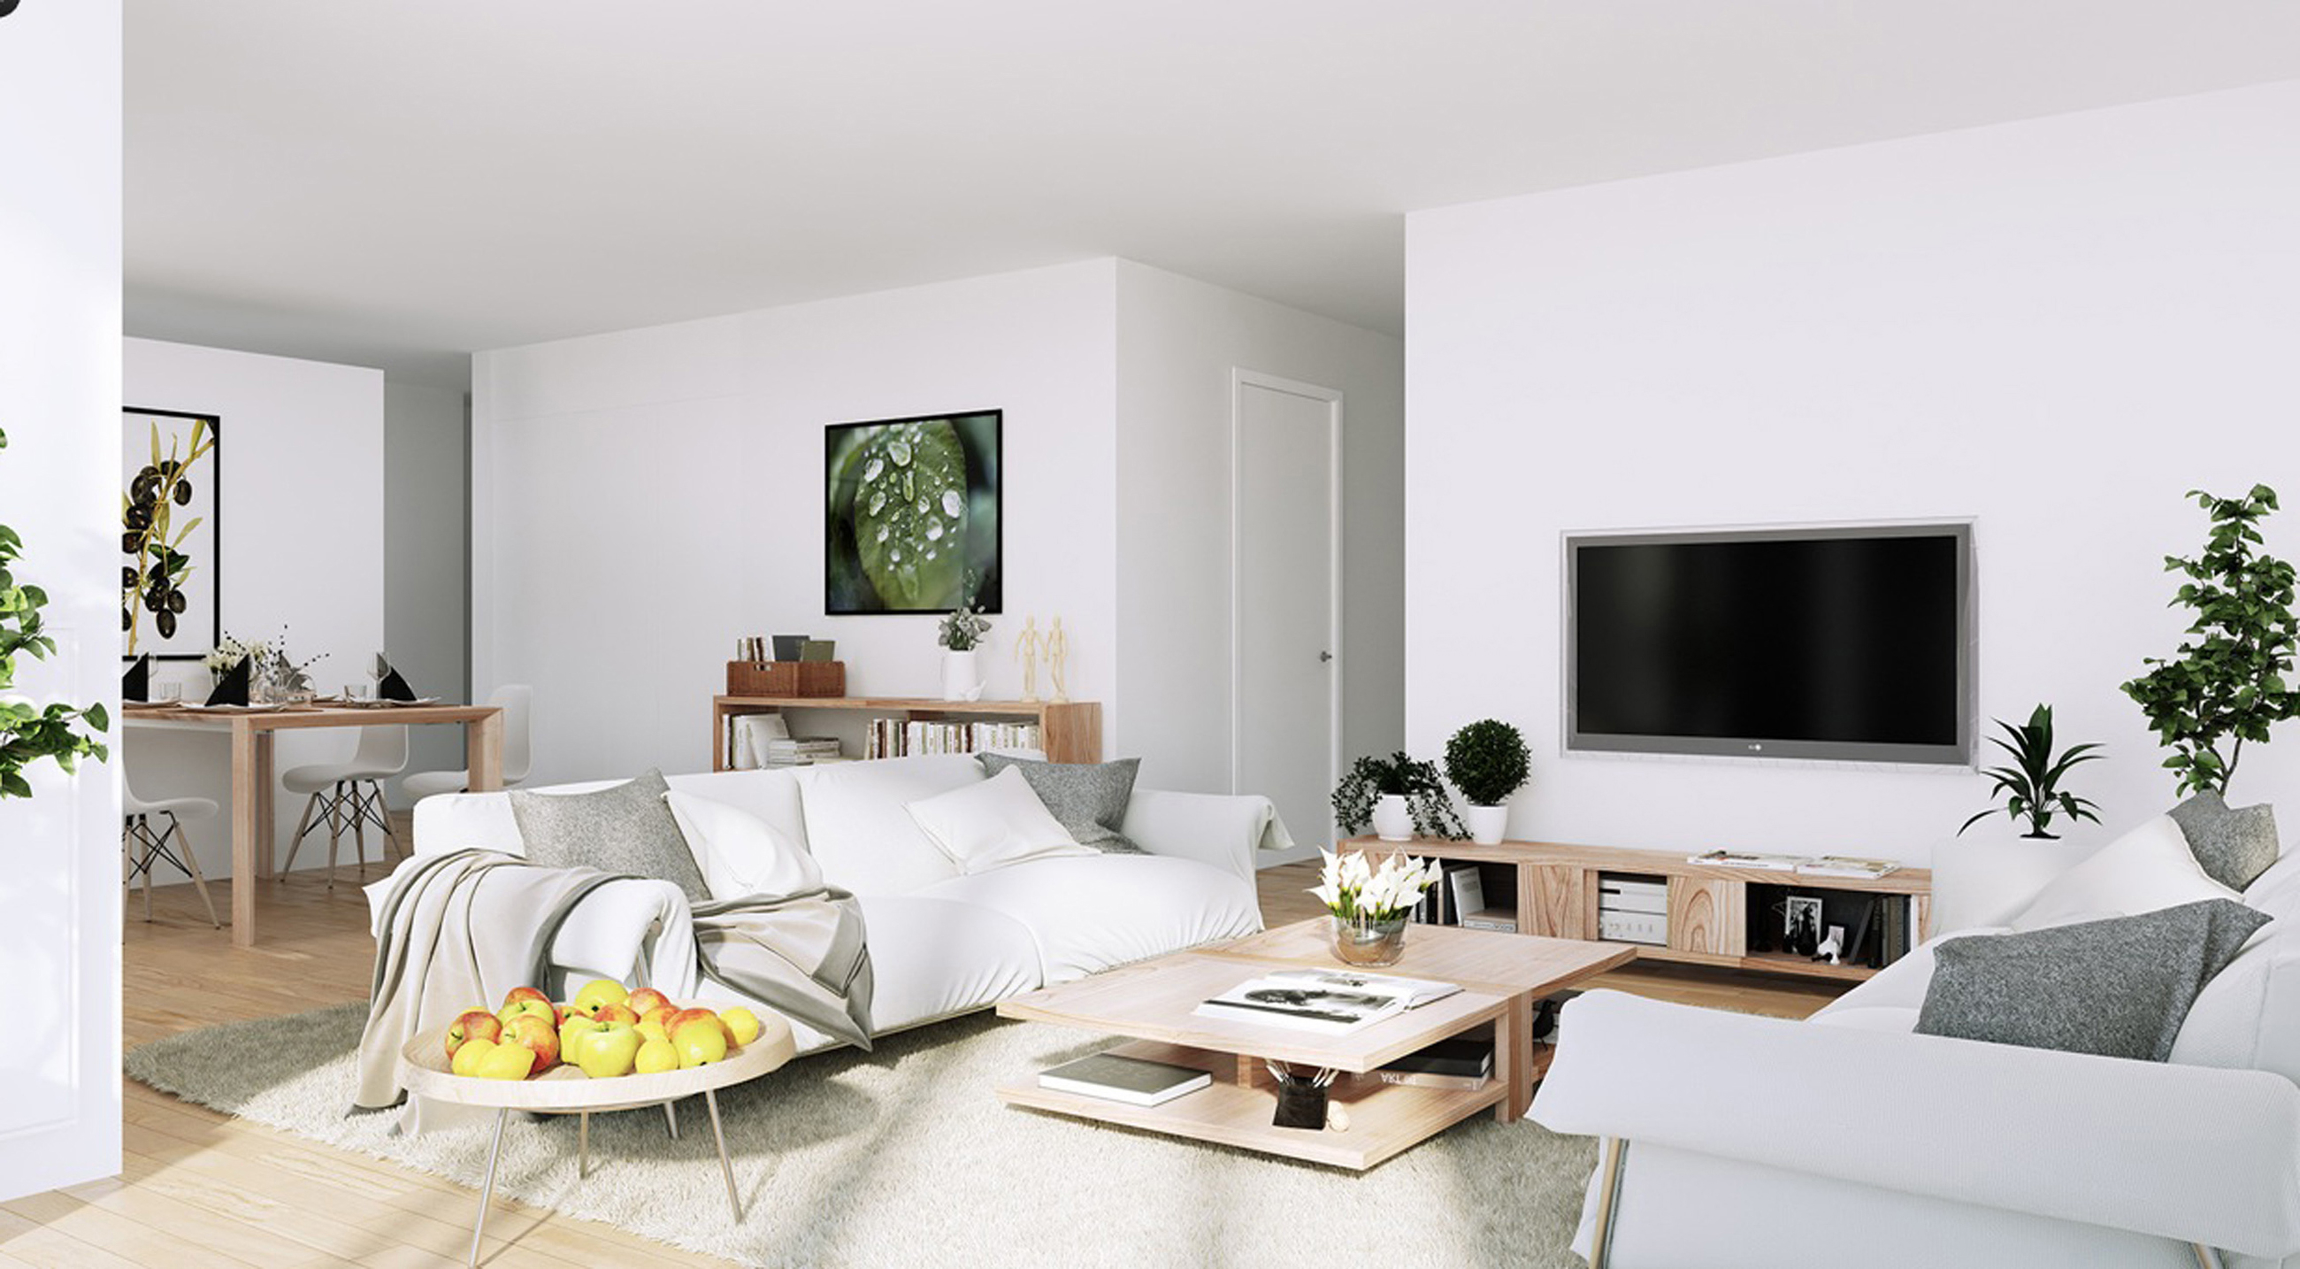 Apartment White Living Entertainment With Organic Green And Wooden Accents And White Modern Sofa (Image 10 of 45)